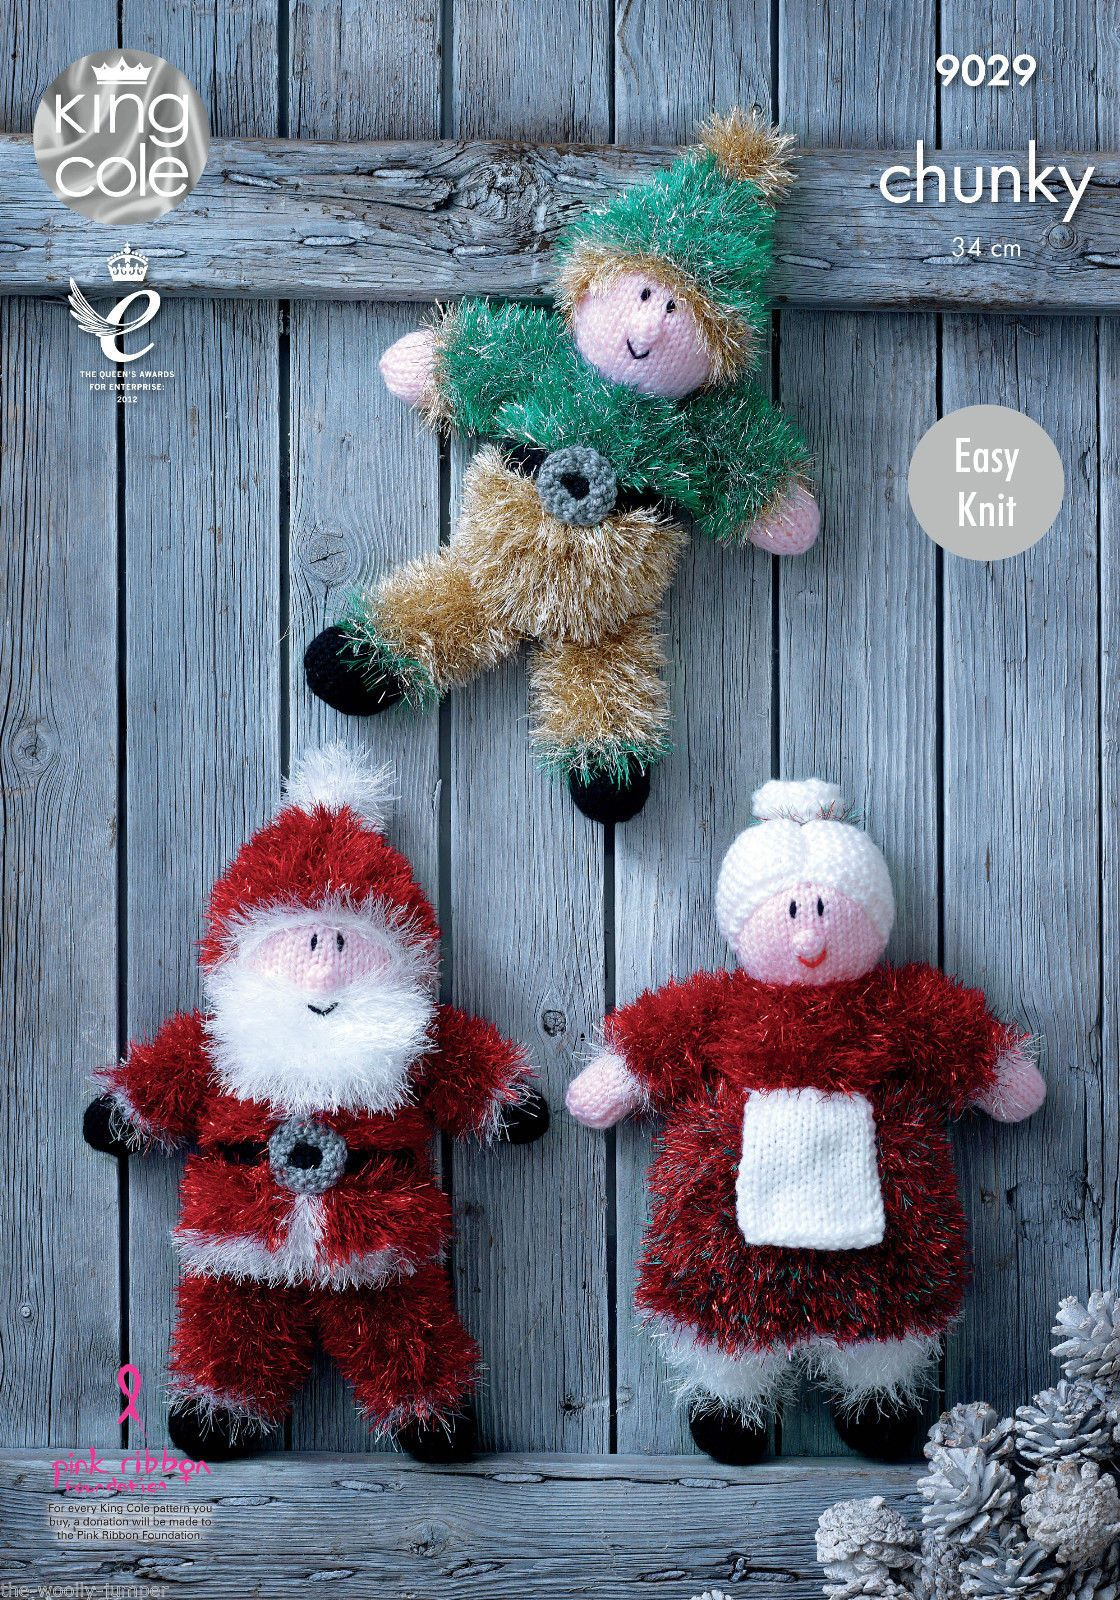 Knitting Patterns For King Cole Tinsel : 9029 - KING COLE EASY KNIT TINSEL CHUNKY CHRISTMAS TOYS KNITTING PATTERN